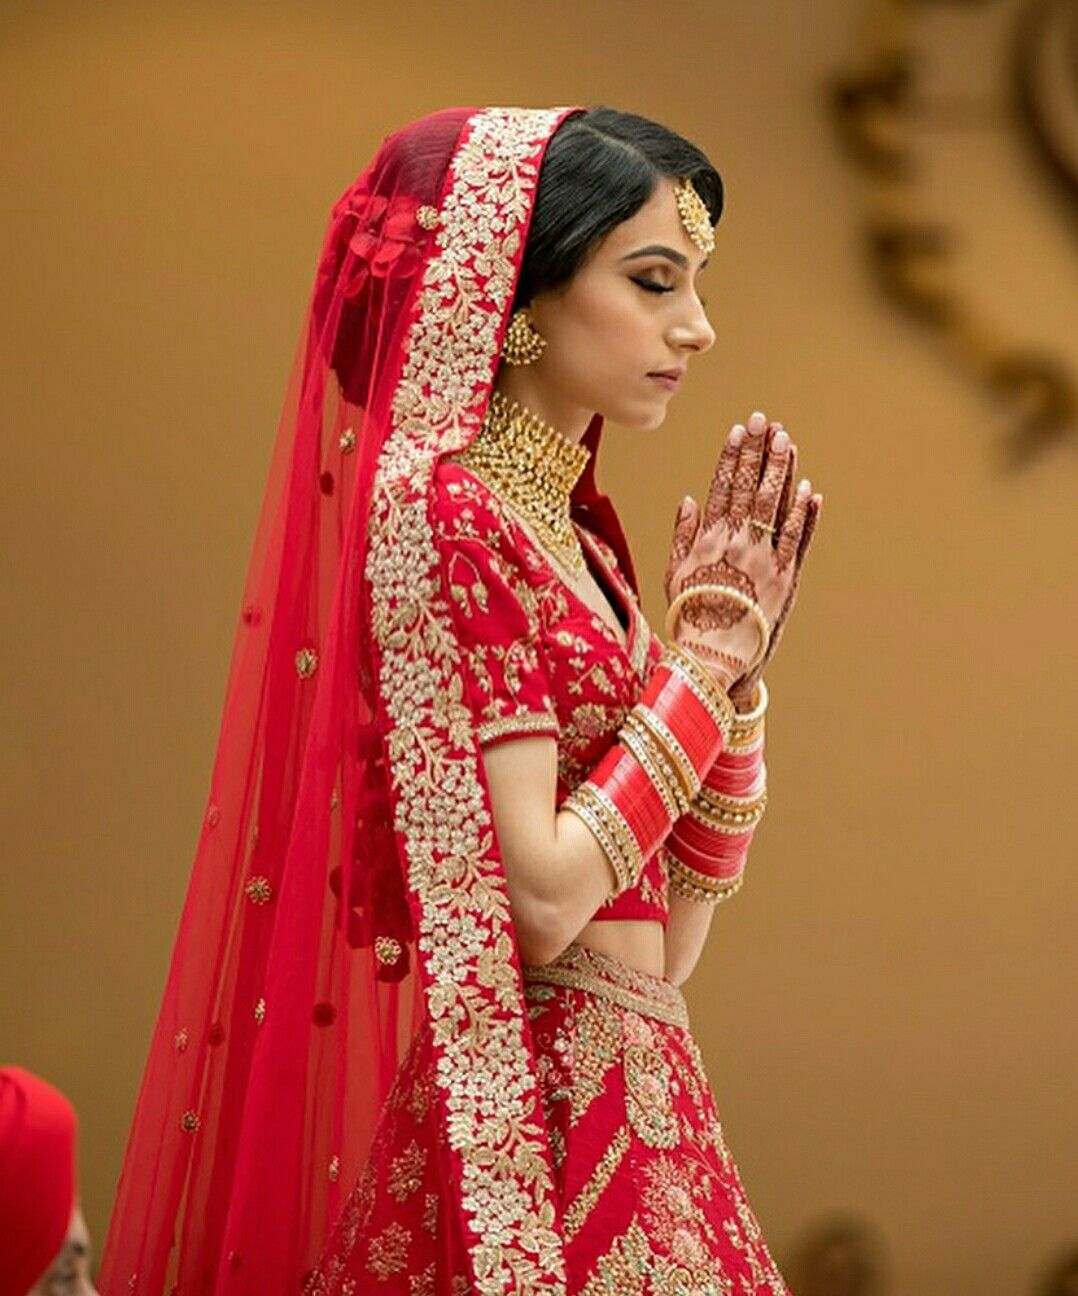 Indian bride outfits image by urmila jasawat on aBridal